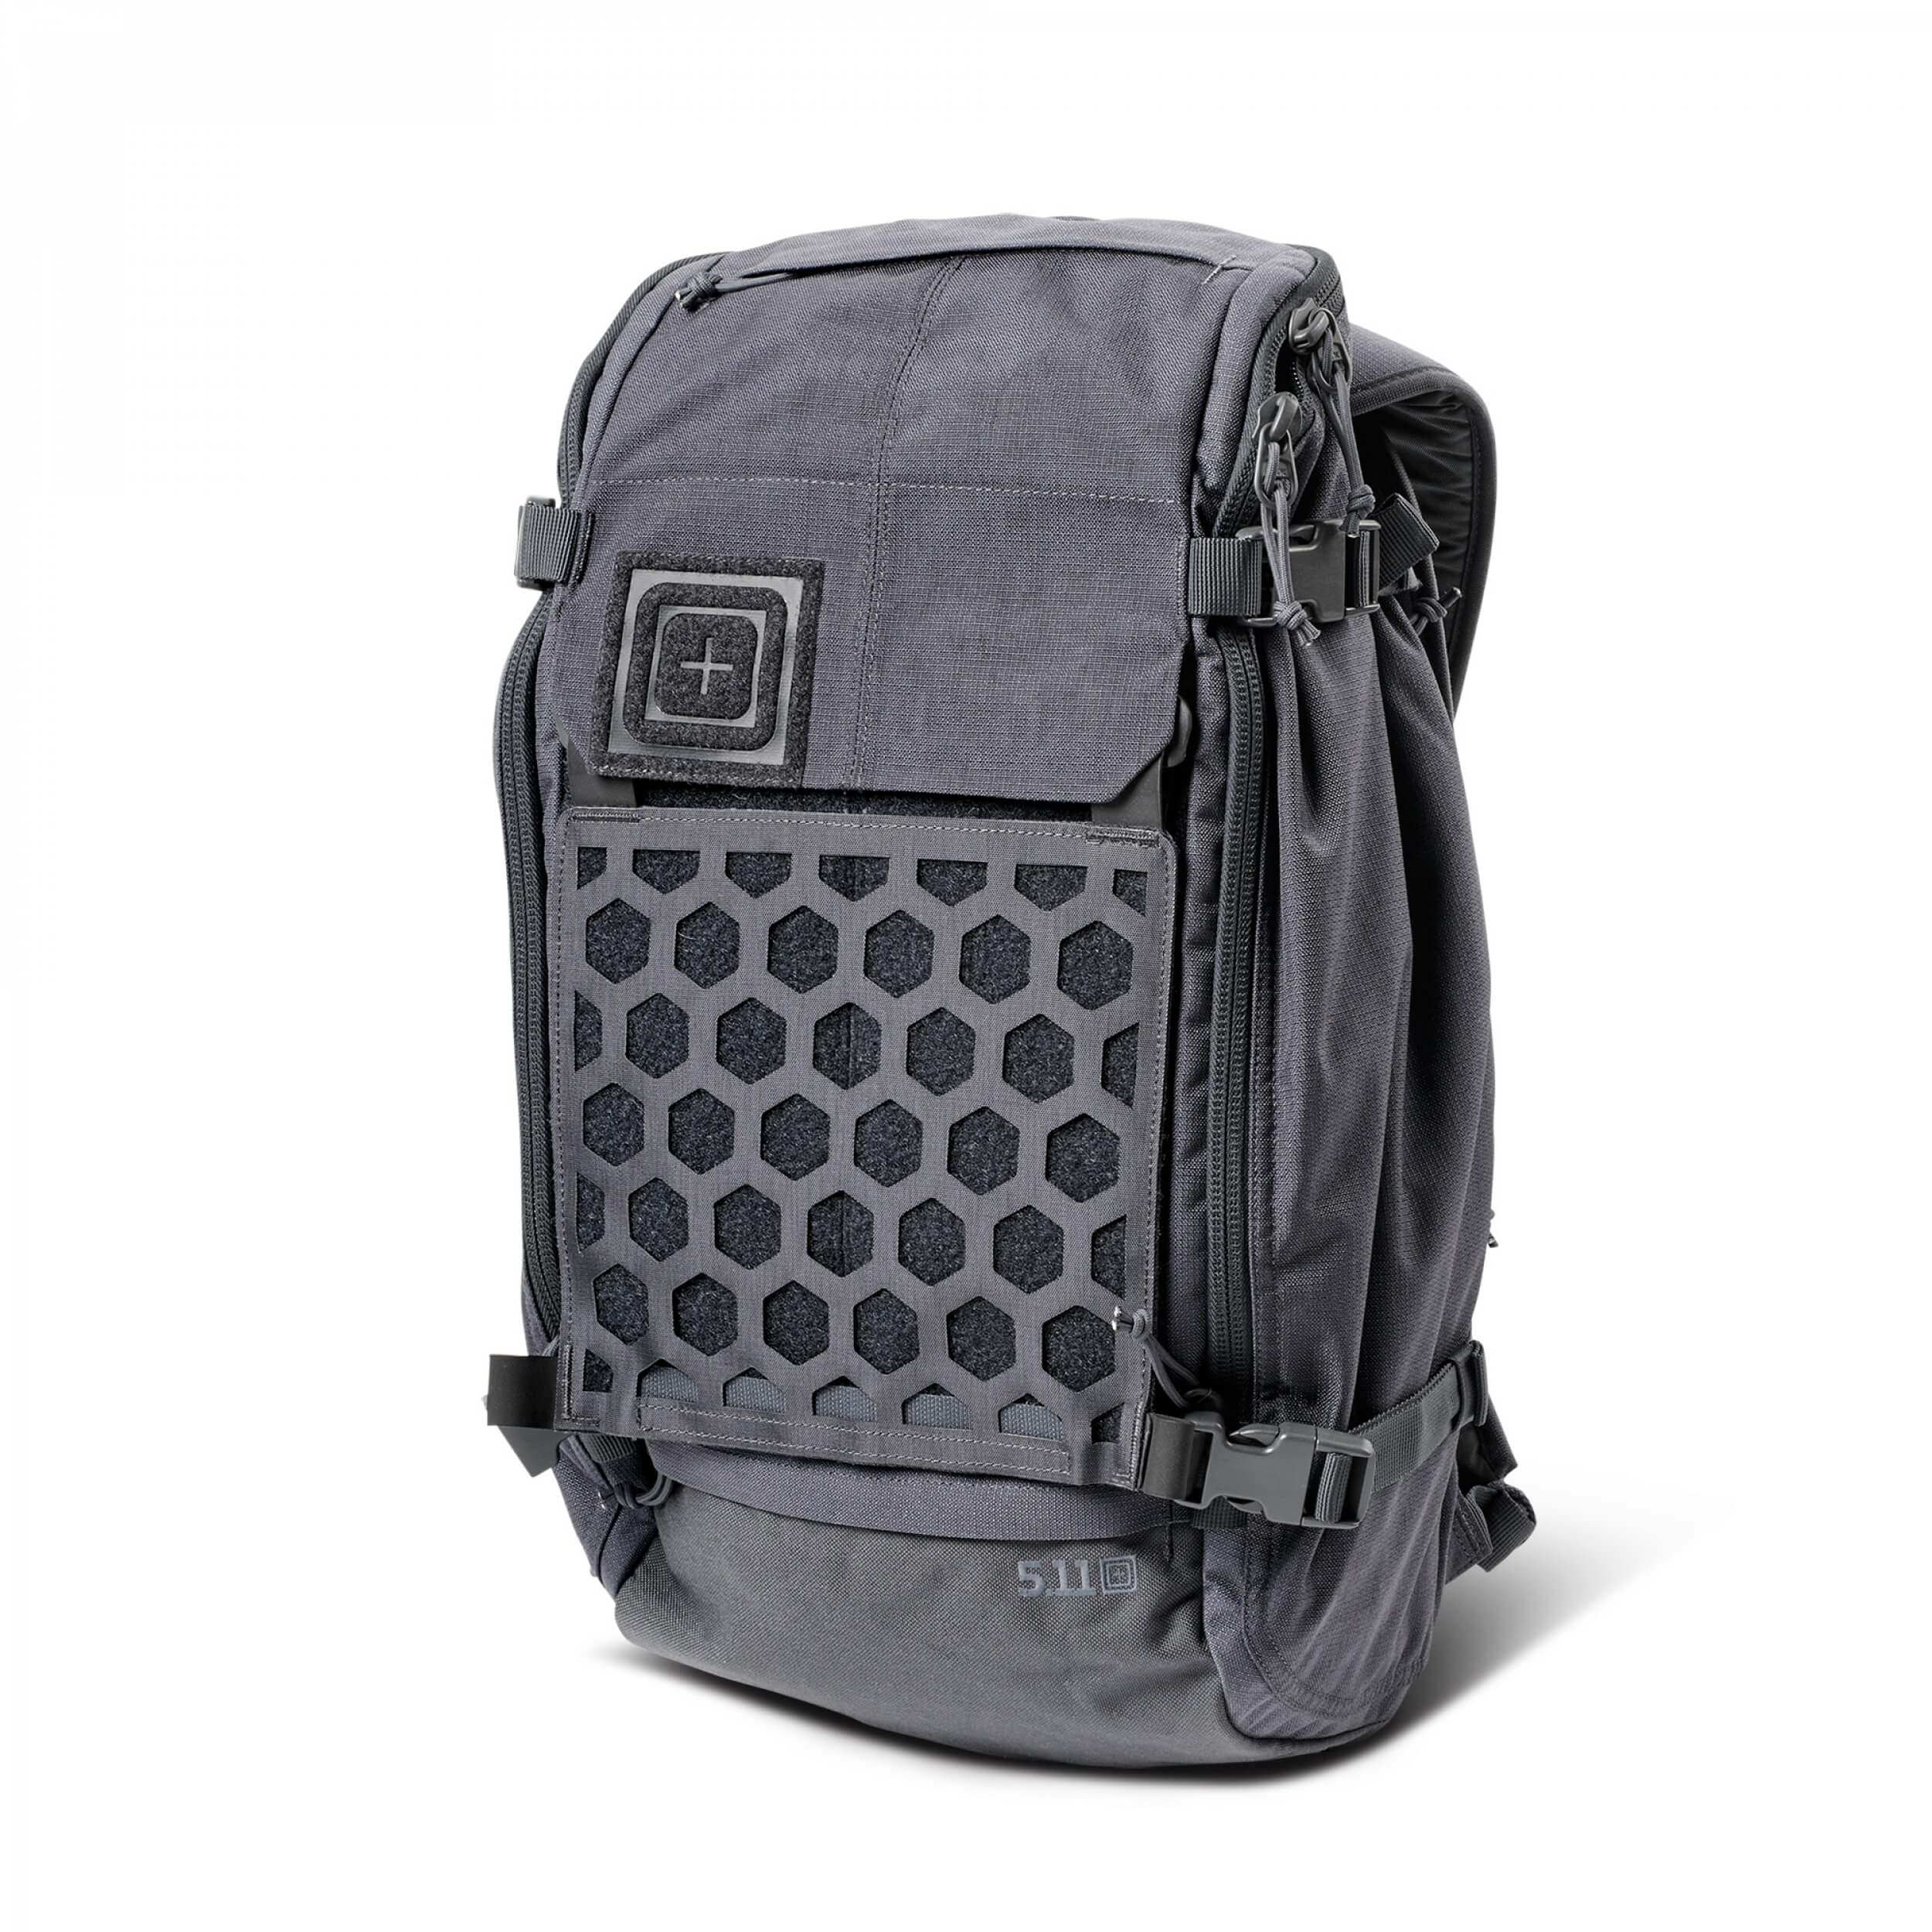 5.11 Tactical AMP24 Rucksack Backpack 32L TUNGSTEN